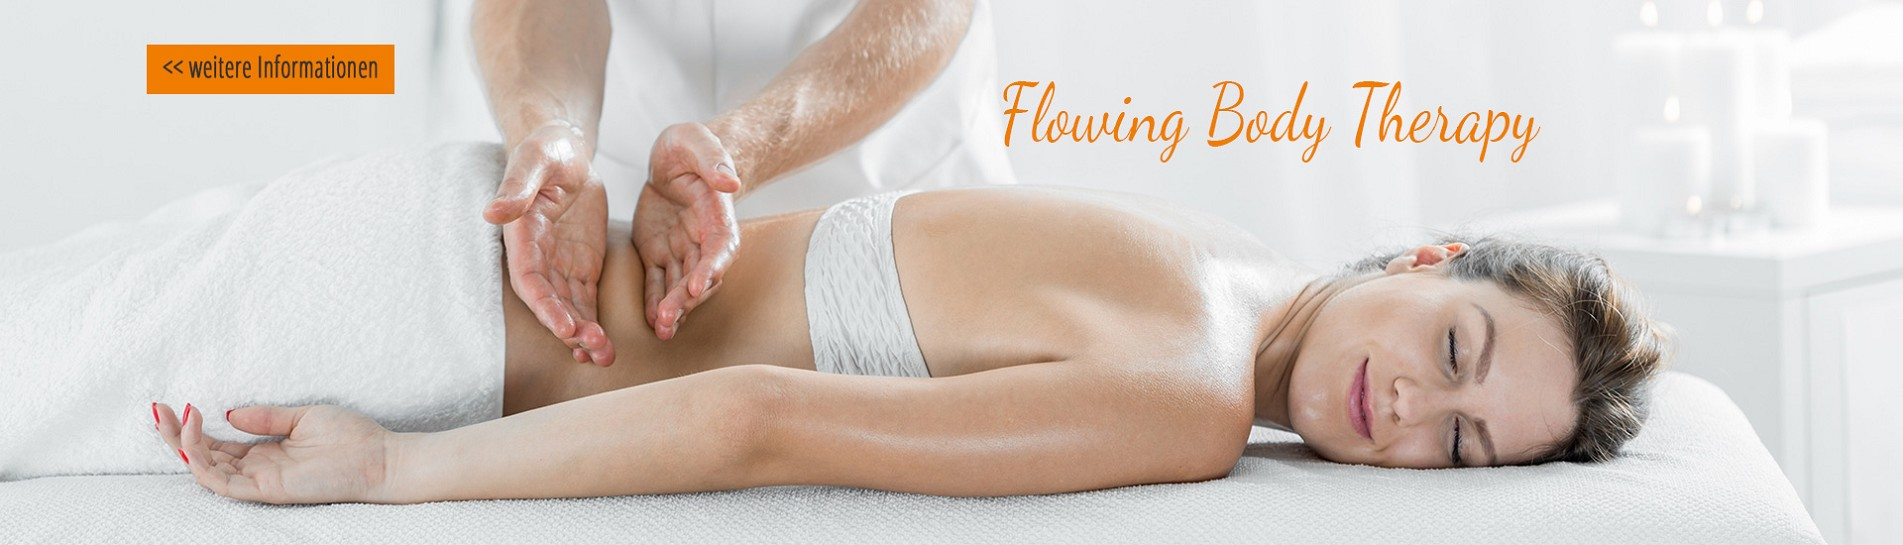 Woman during therapeutic body massage